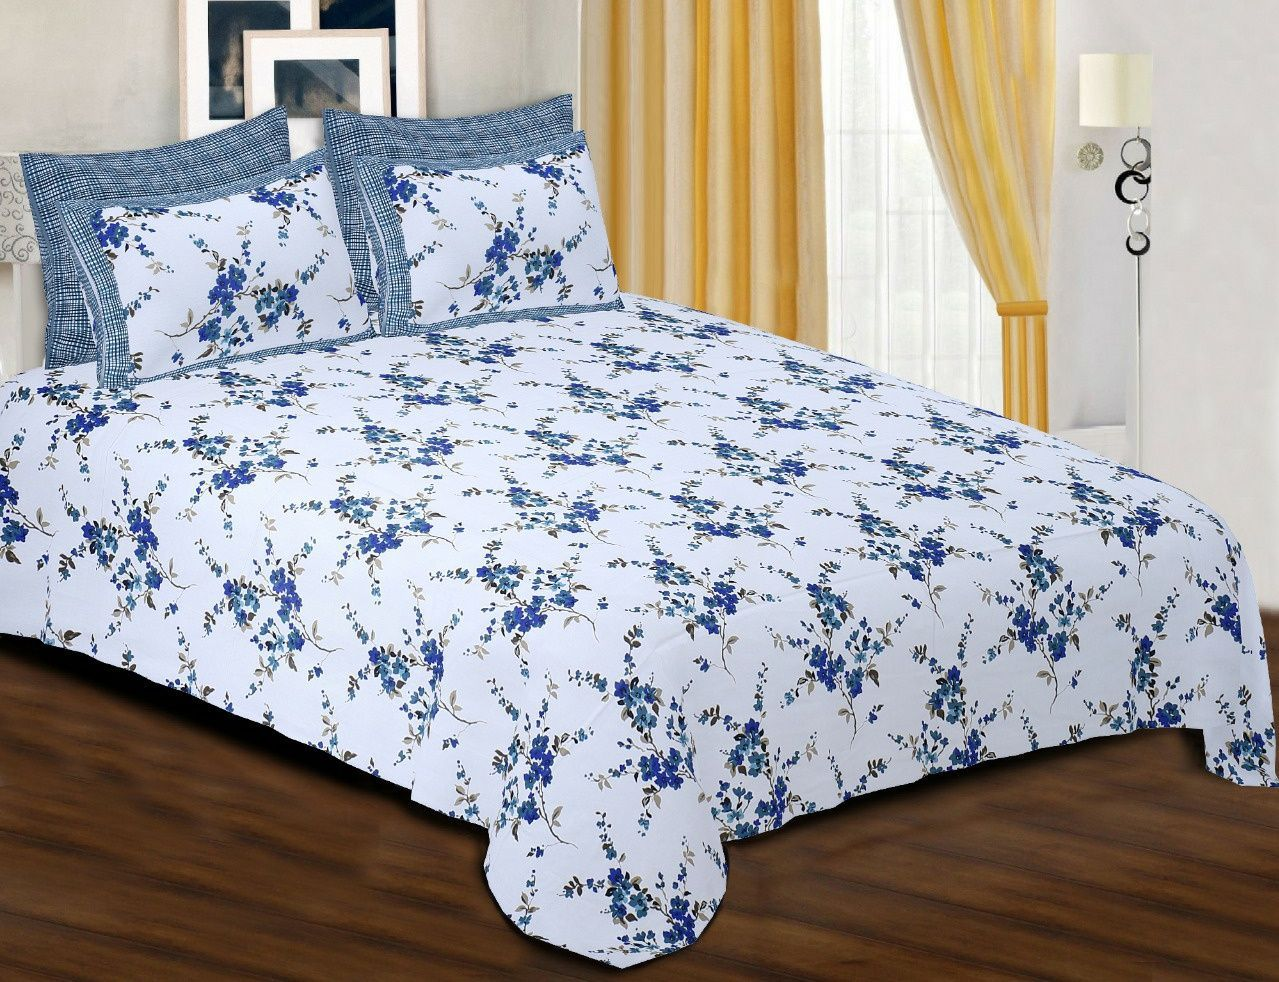 Bedsheet cotton double bed floral Padmini white blue 108×100 inches